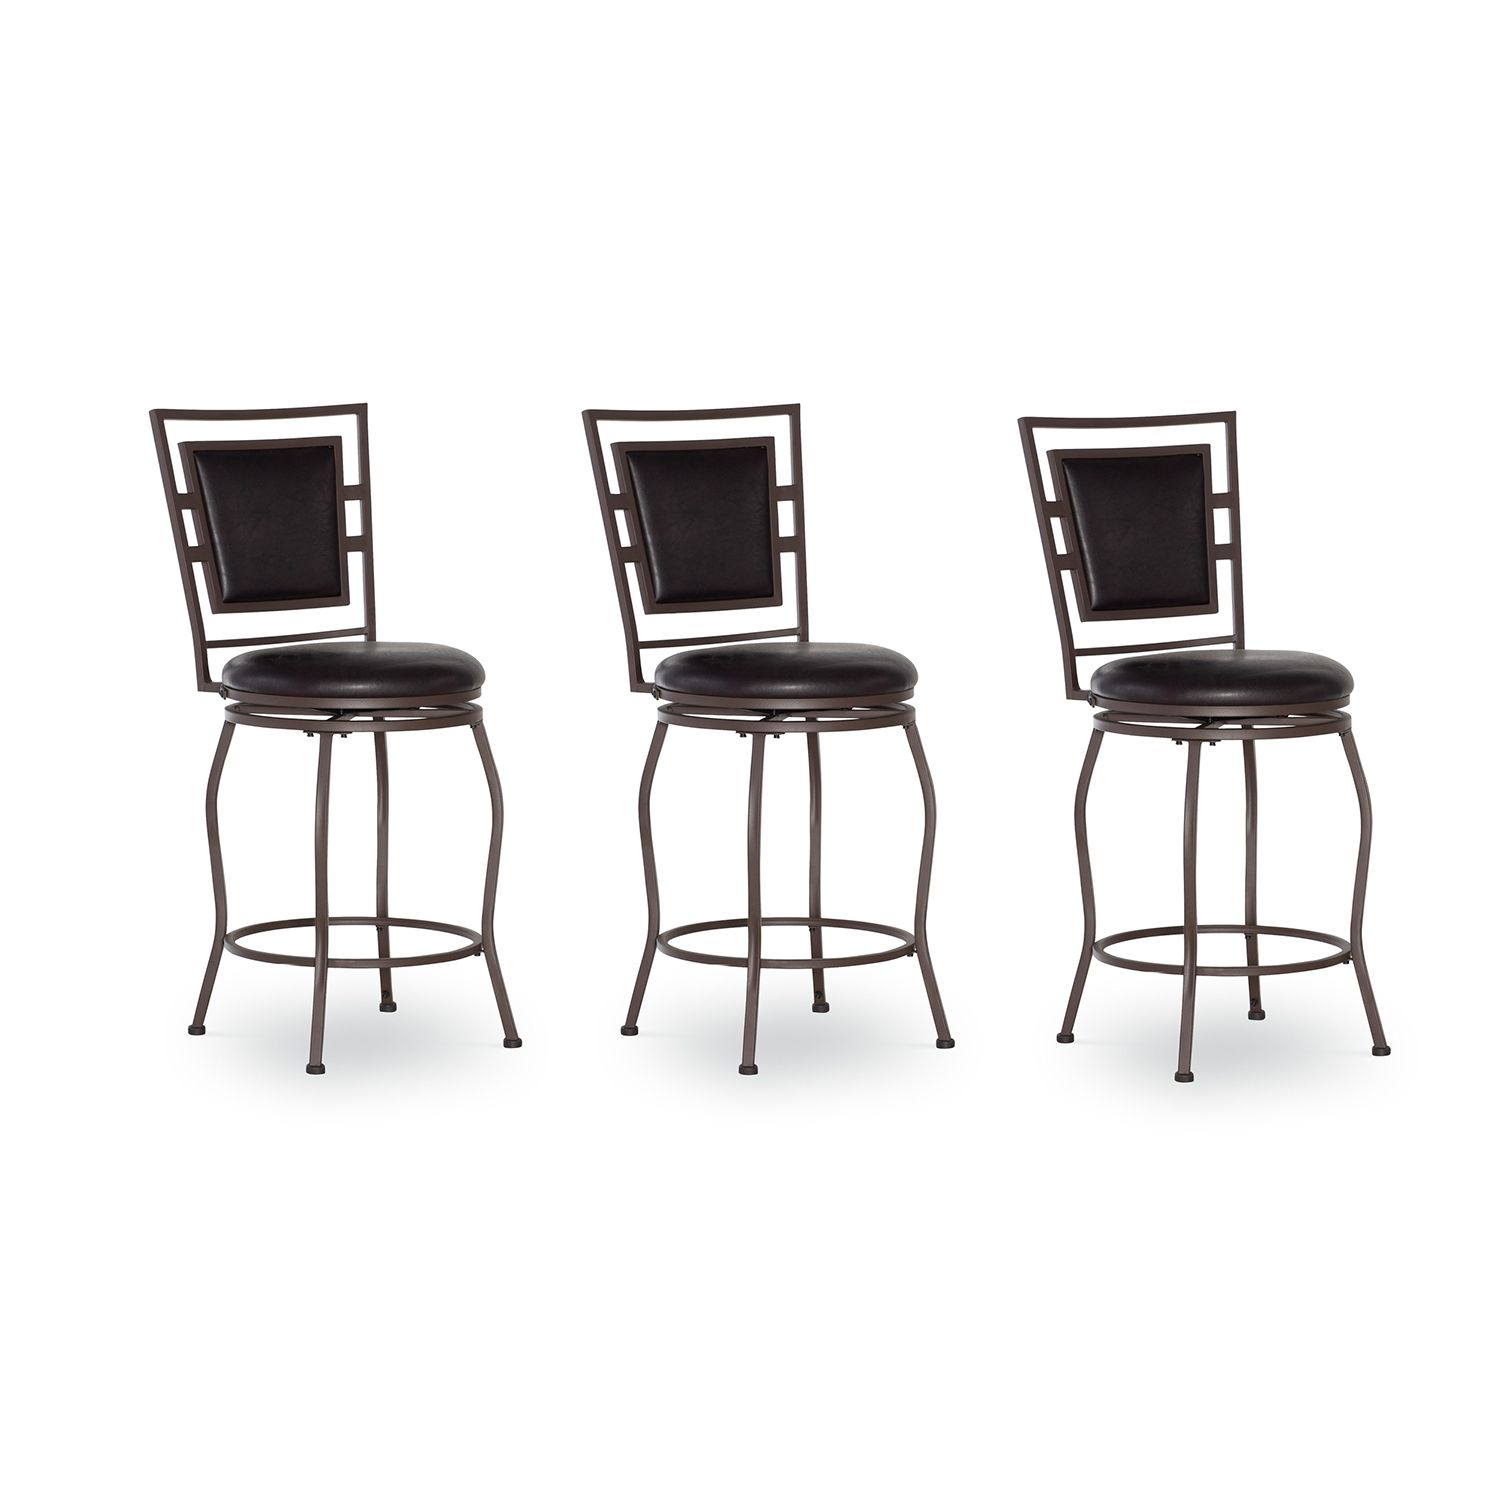 Linon Townsend 3 Piece Adjustable Stool Set